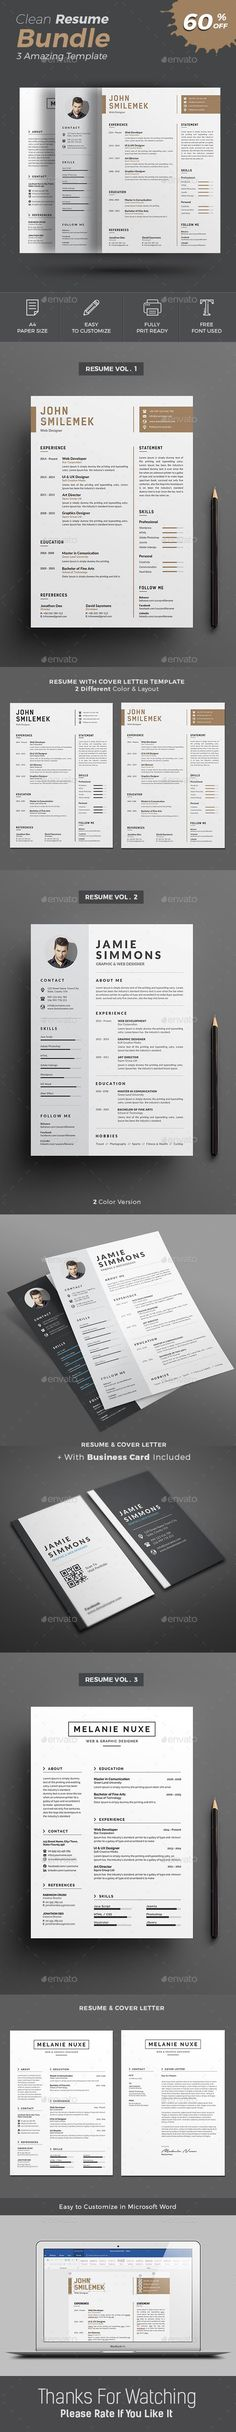 Clean and Professional Resume Set Template